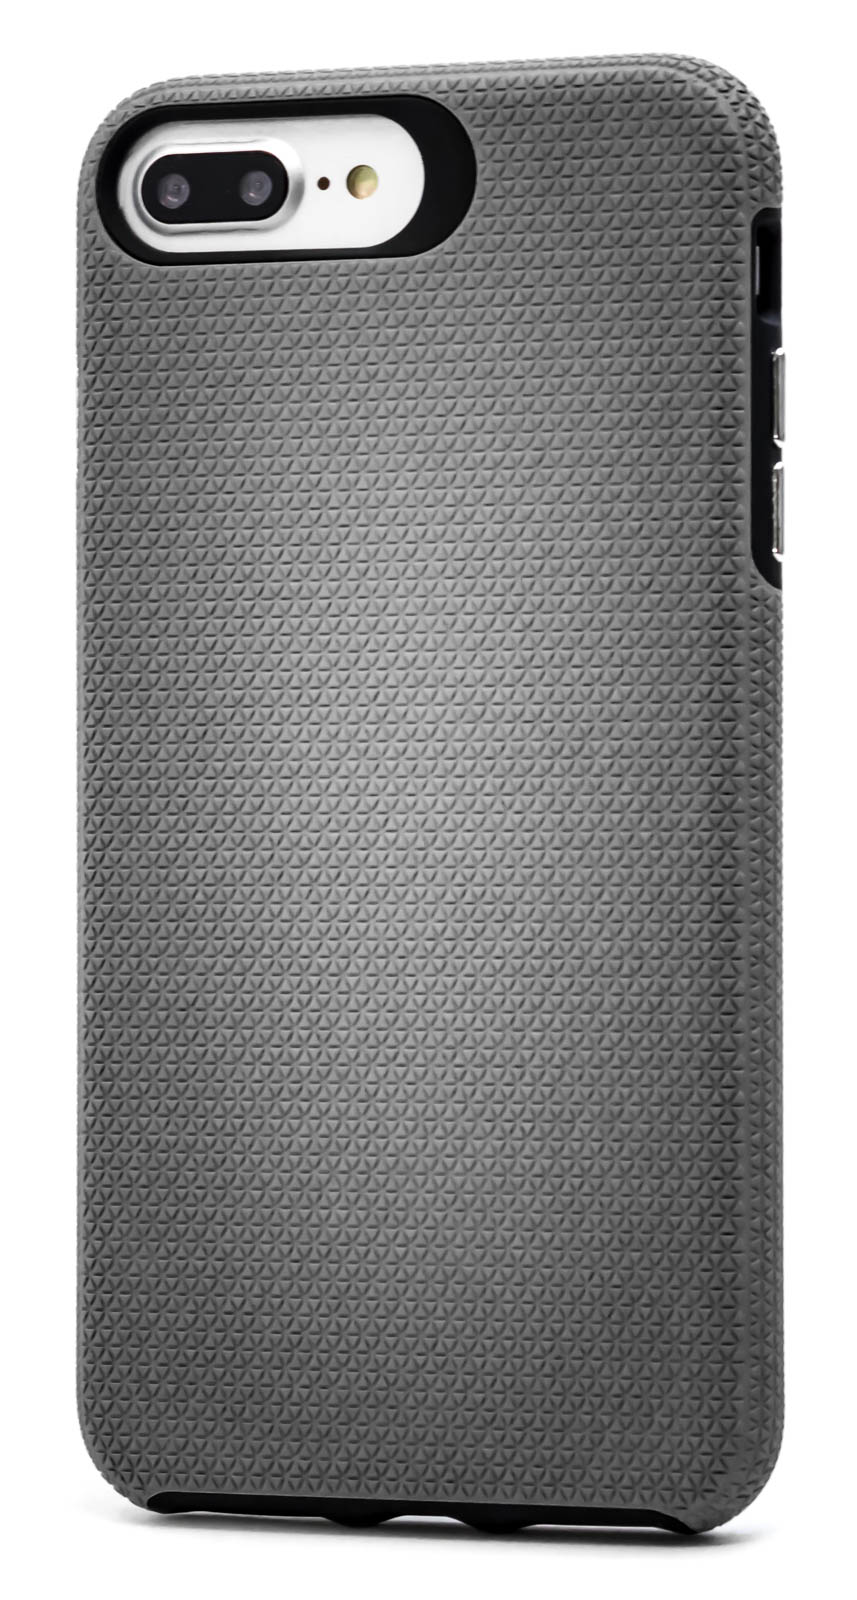 Apple-iPhone-6s-Plus-7-Plus-8-Plus-Case-Hybrid-Textured-Armor-Shell-Cover thumbnail 22